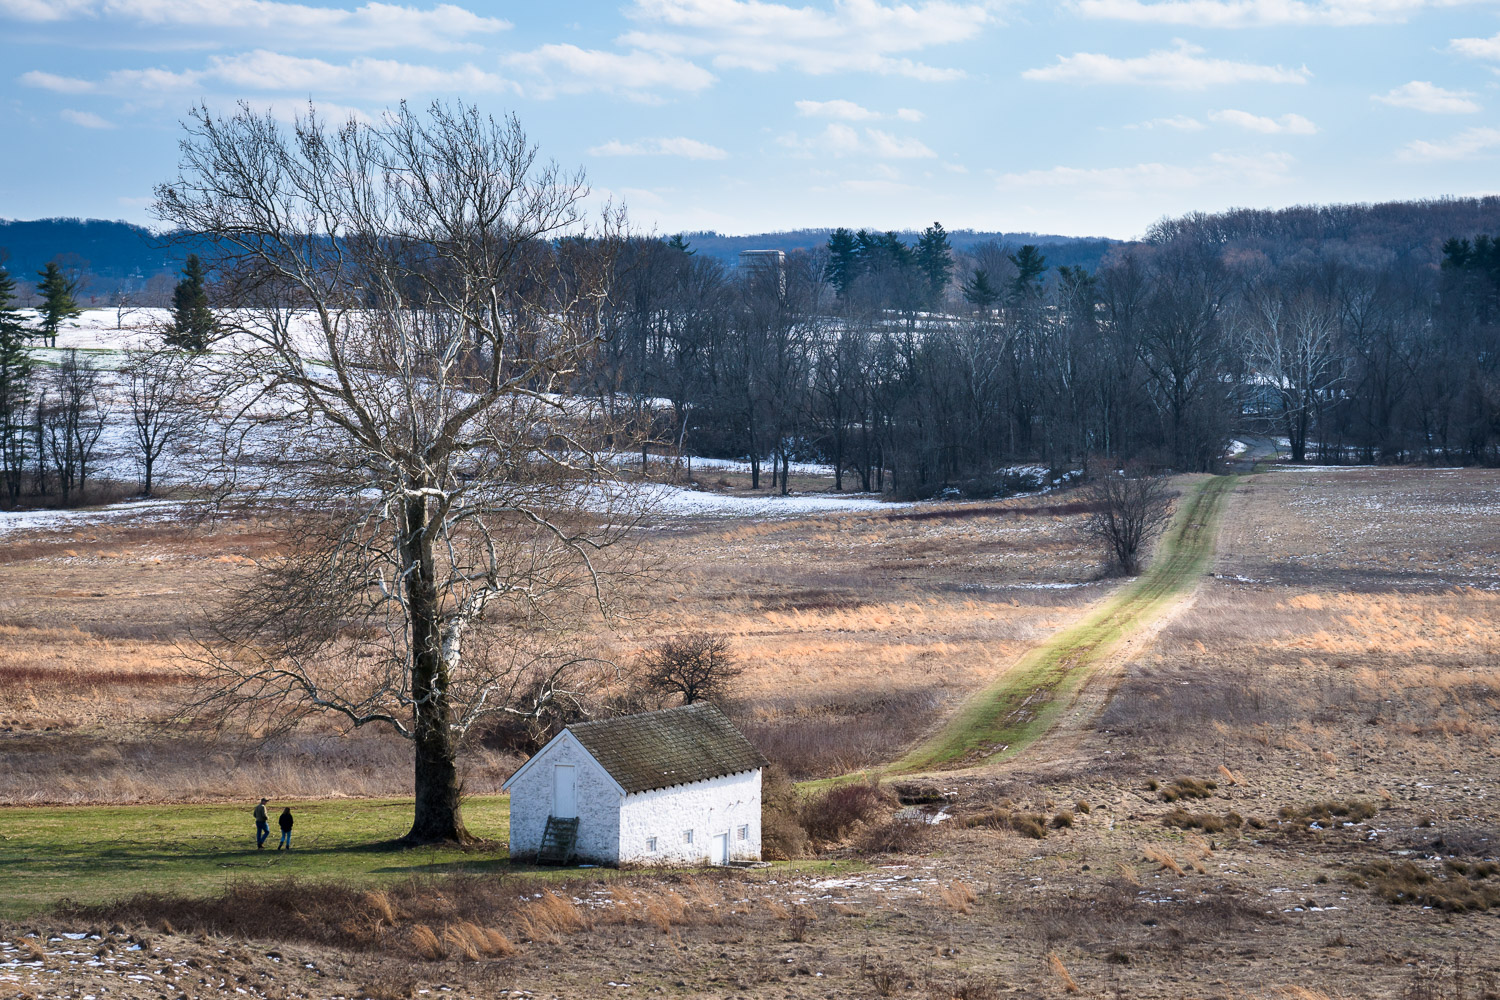 Valley Forge National Park - ©John Guillaume  1/500th, f4.5, ISO 100 - Shot handheld